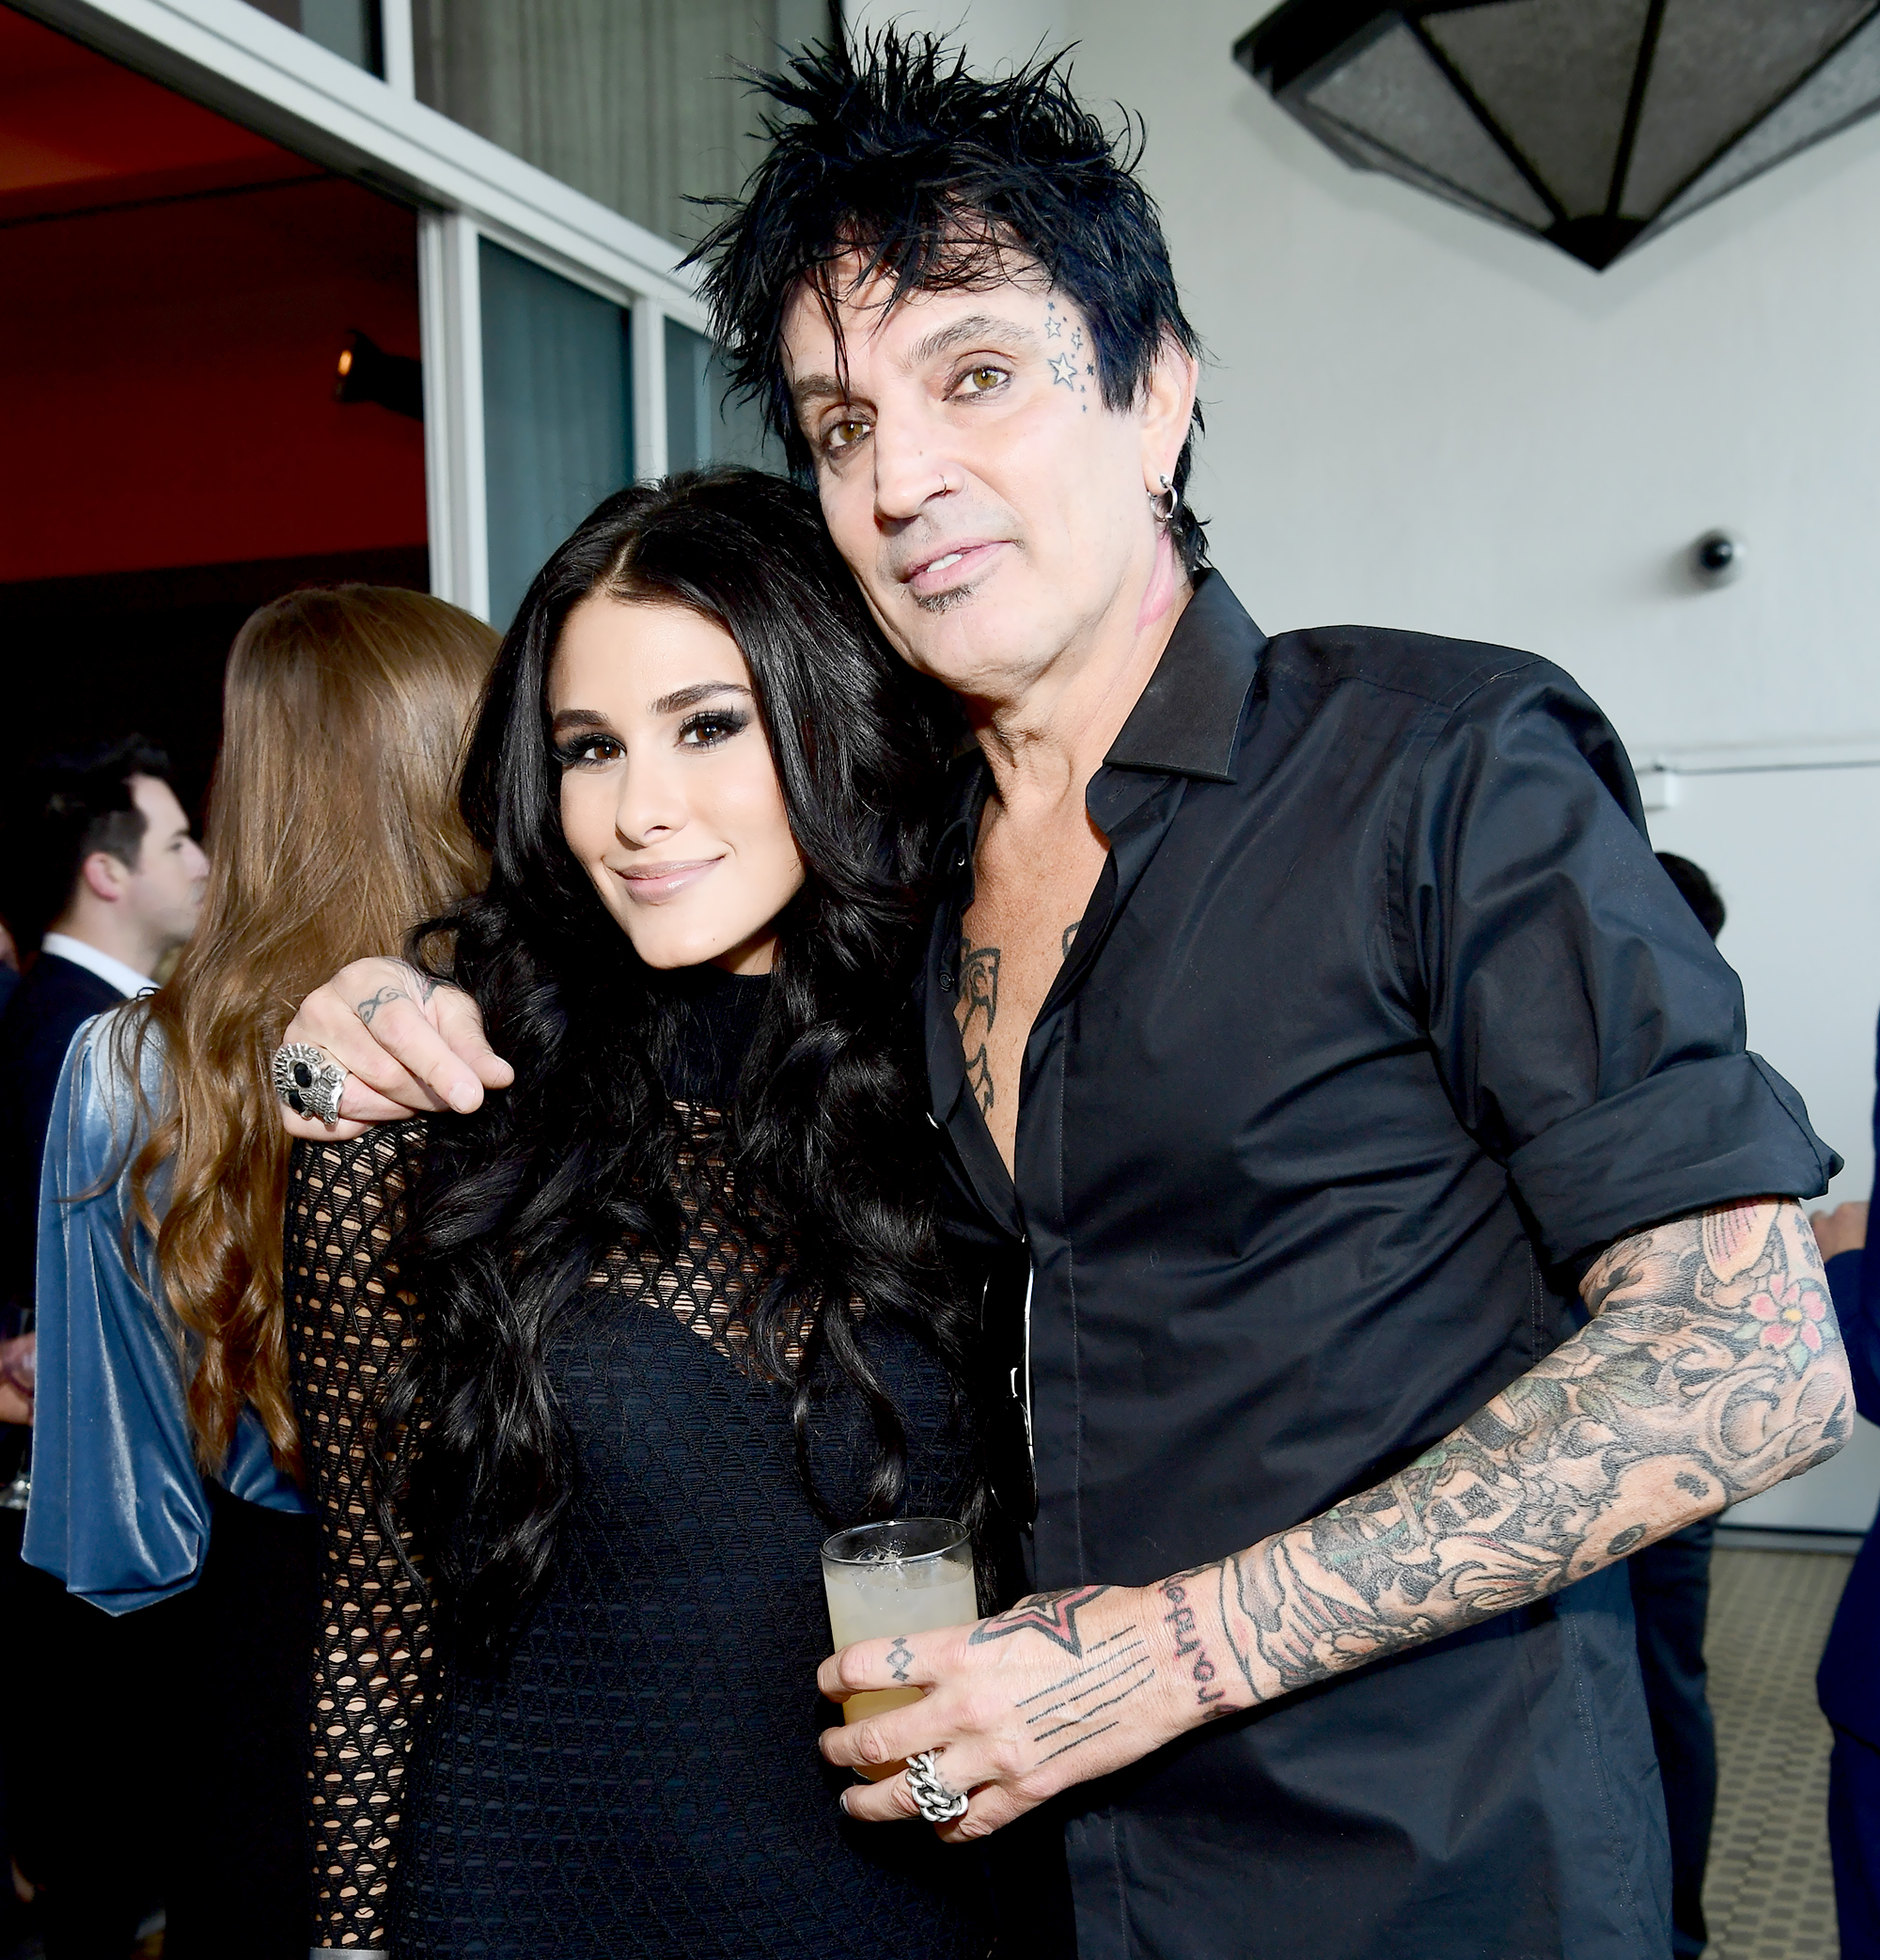 Tommy-Lee-and-Brittany-Furlan-married - Valentine's Day is a special holiday for the Mötley Crüe drummer and former Vine star. The couple announced their engagement on Valentine's Day 2018 and tied the knot exactly one year later.